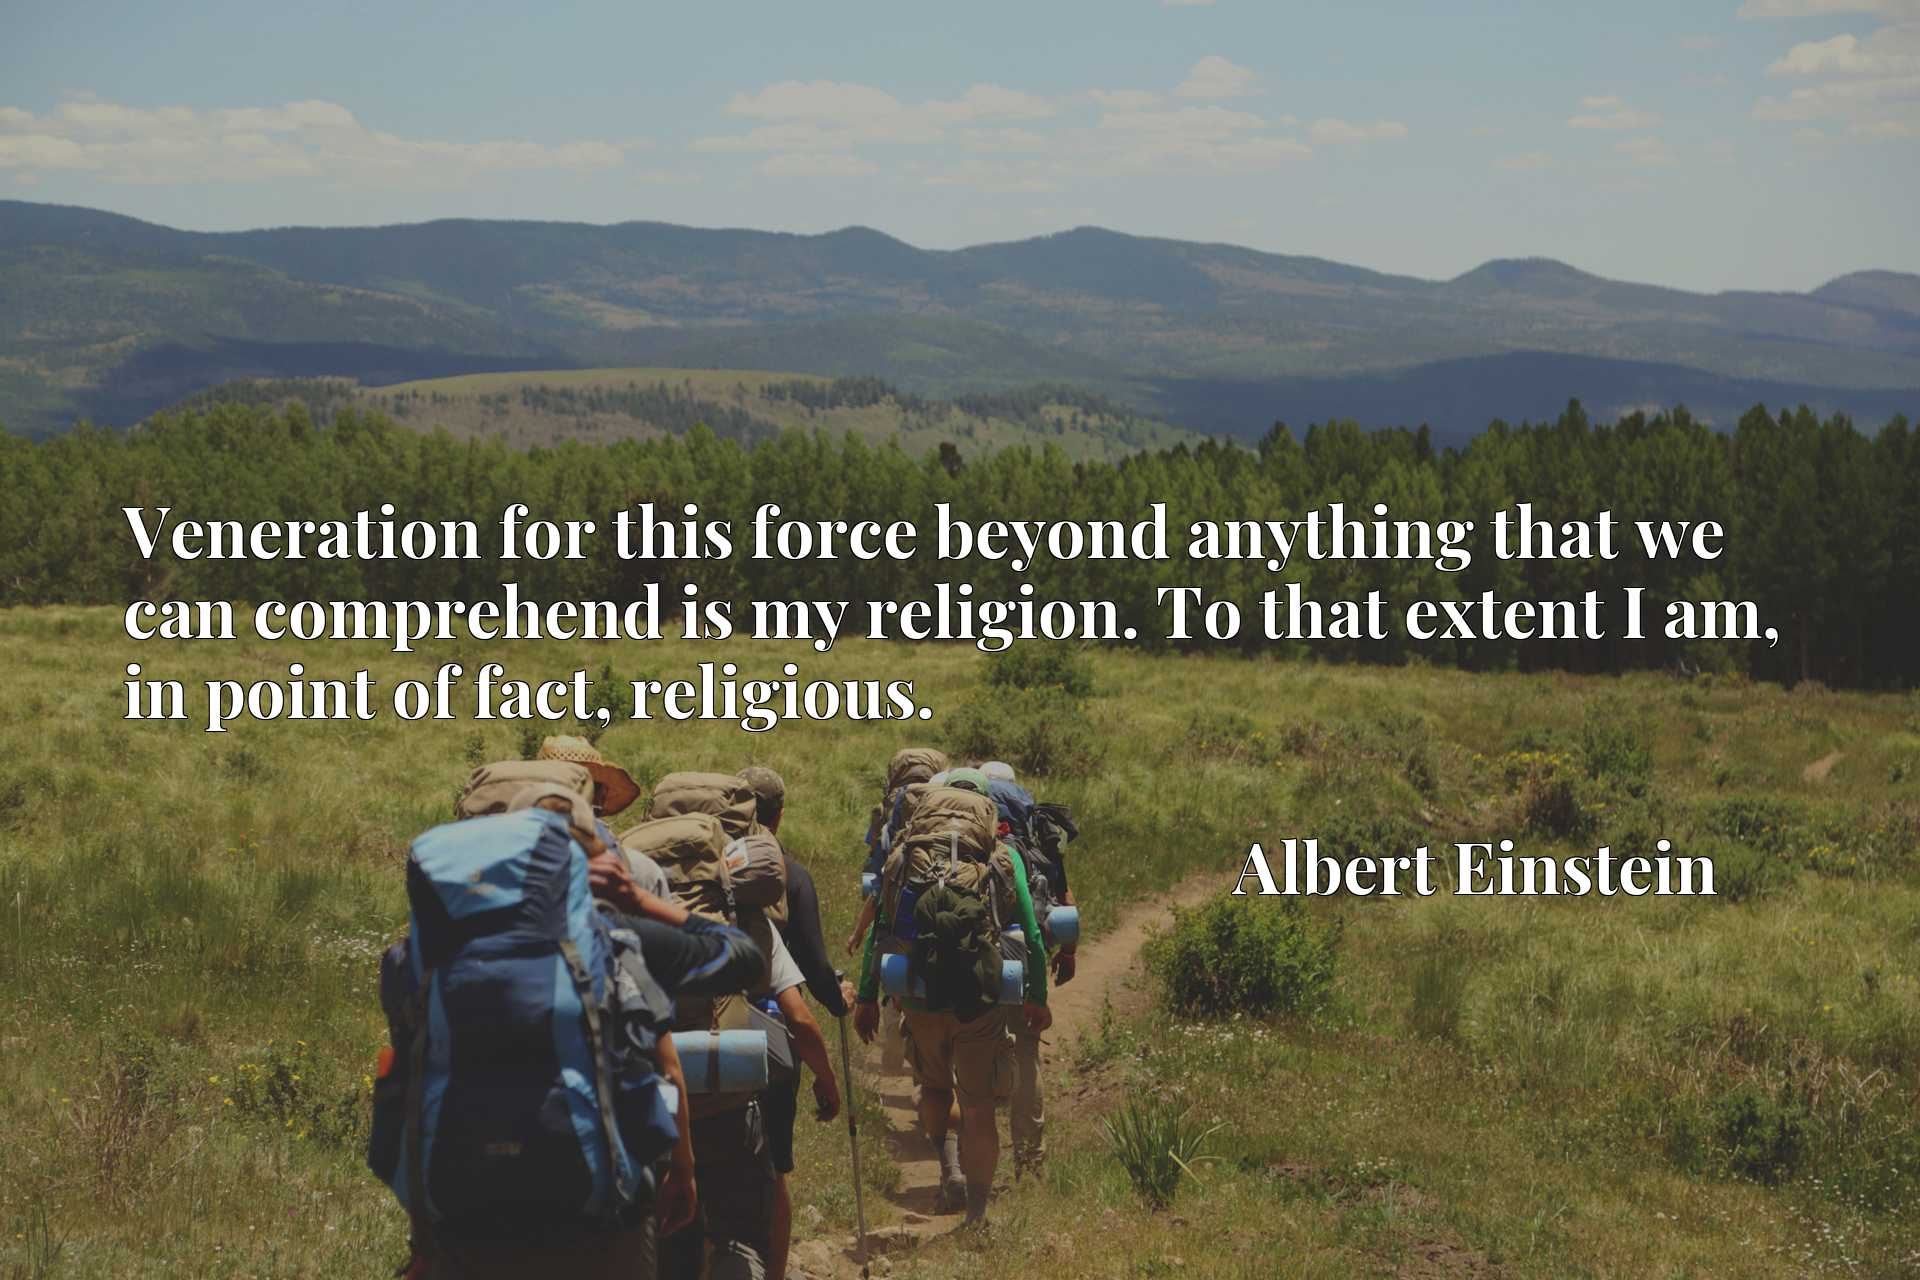 Veneration for this force beyond anything that we can comprehend is my religion. To that extent I am, in point of fact, religious.